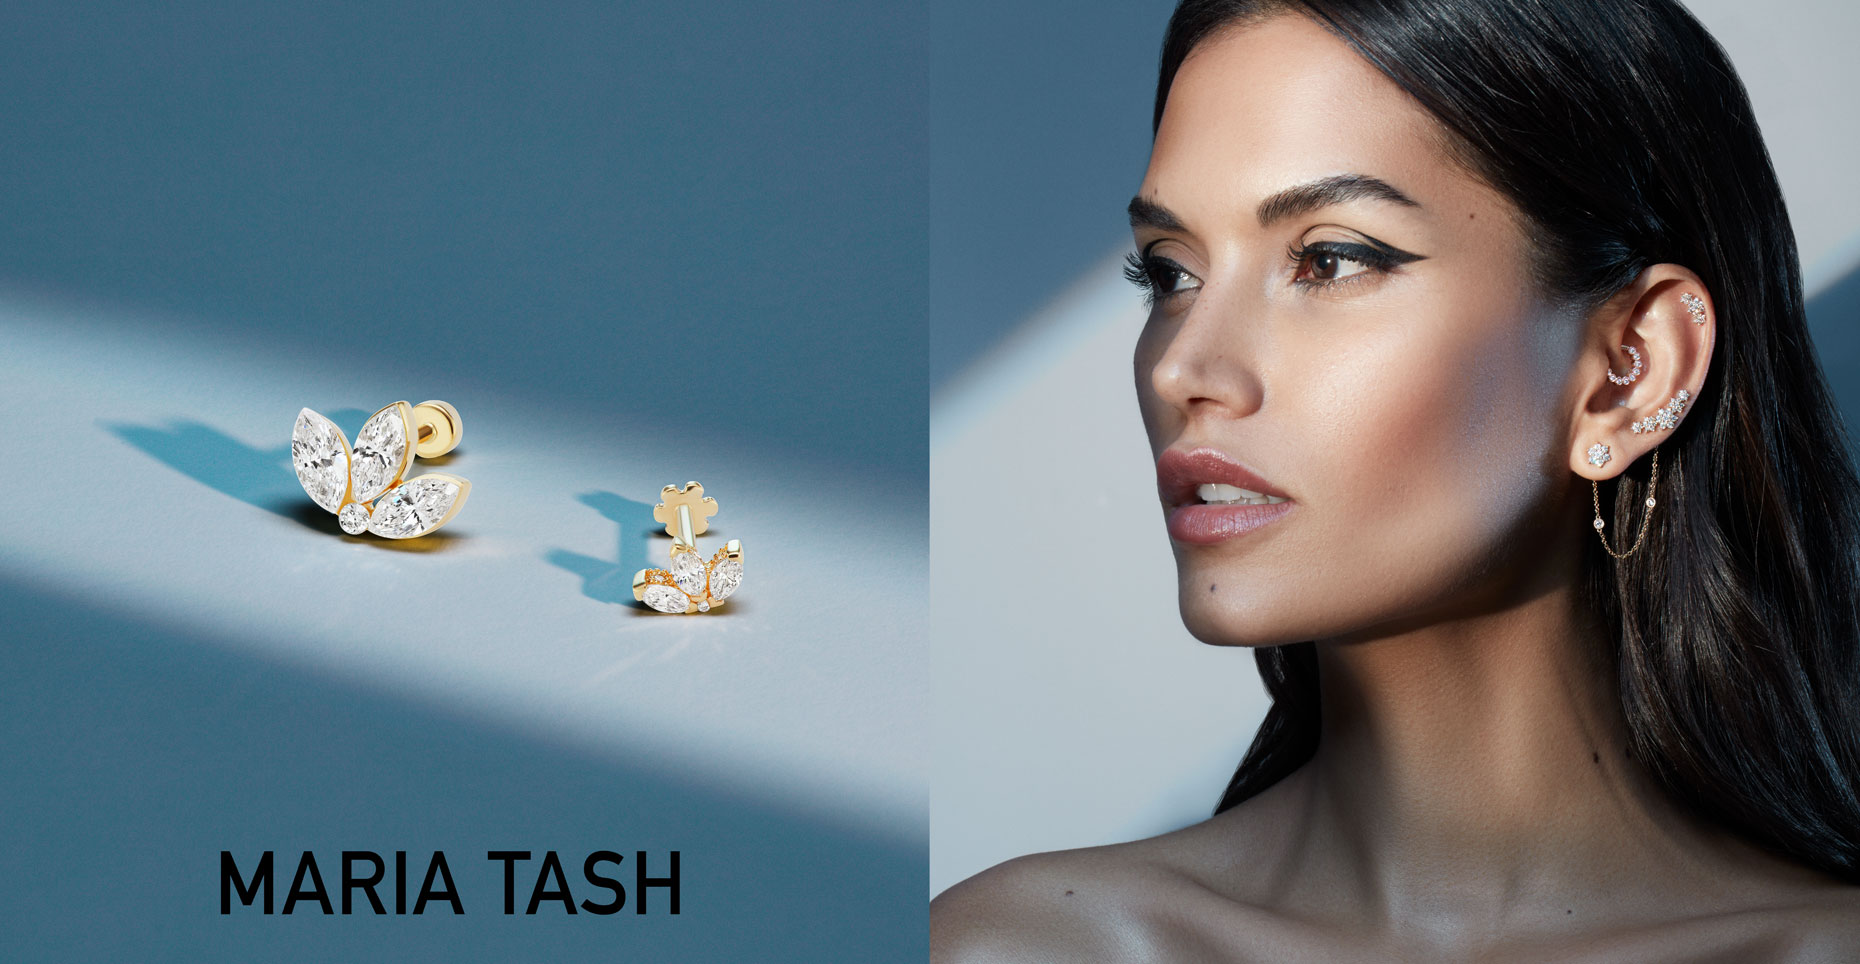 Maria Tash campaign photoshoot ear piercing model Aline Lima diamond and gold ear jewelry